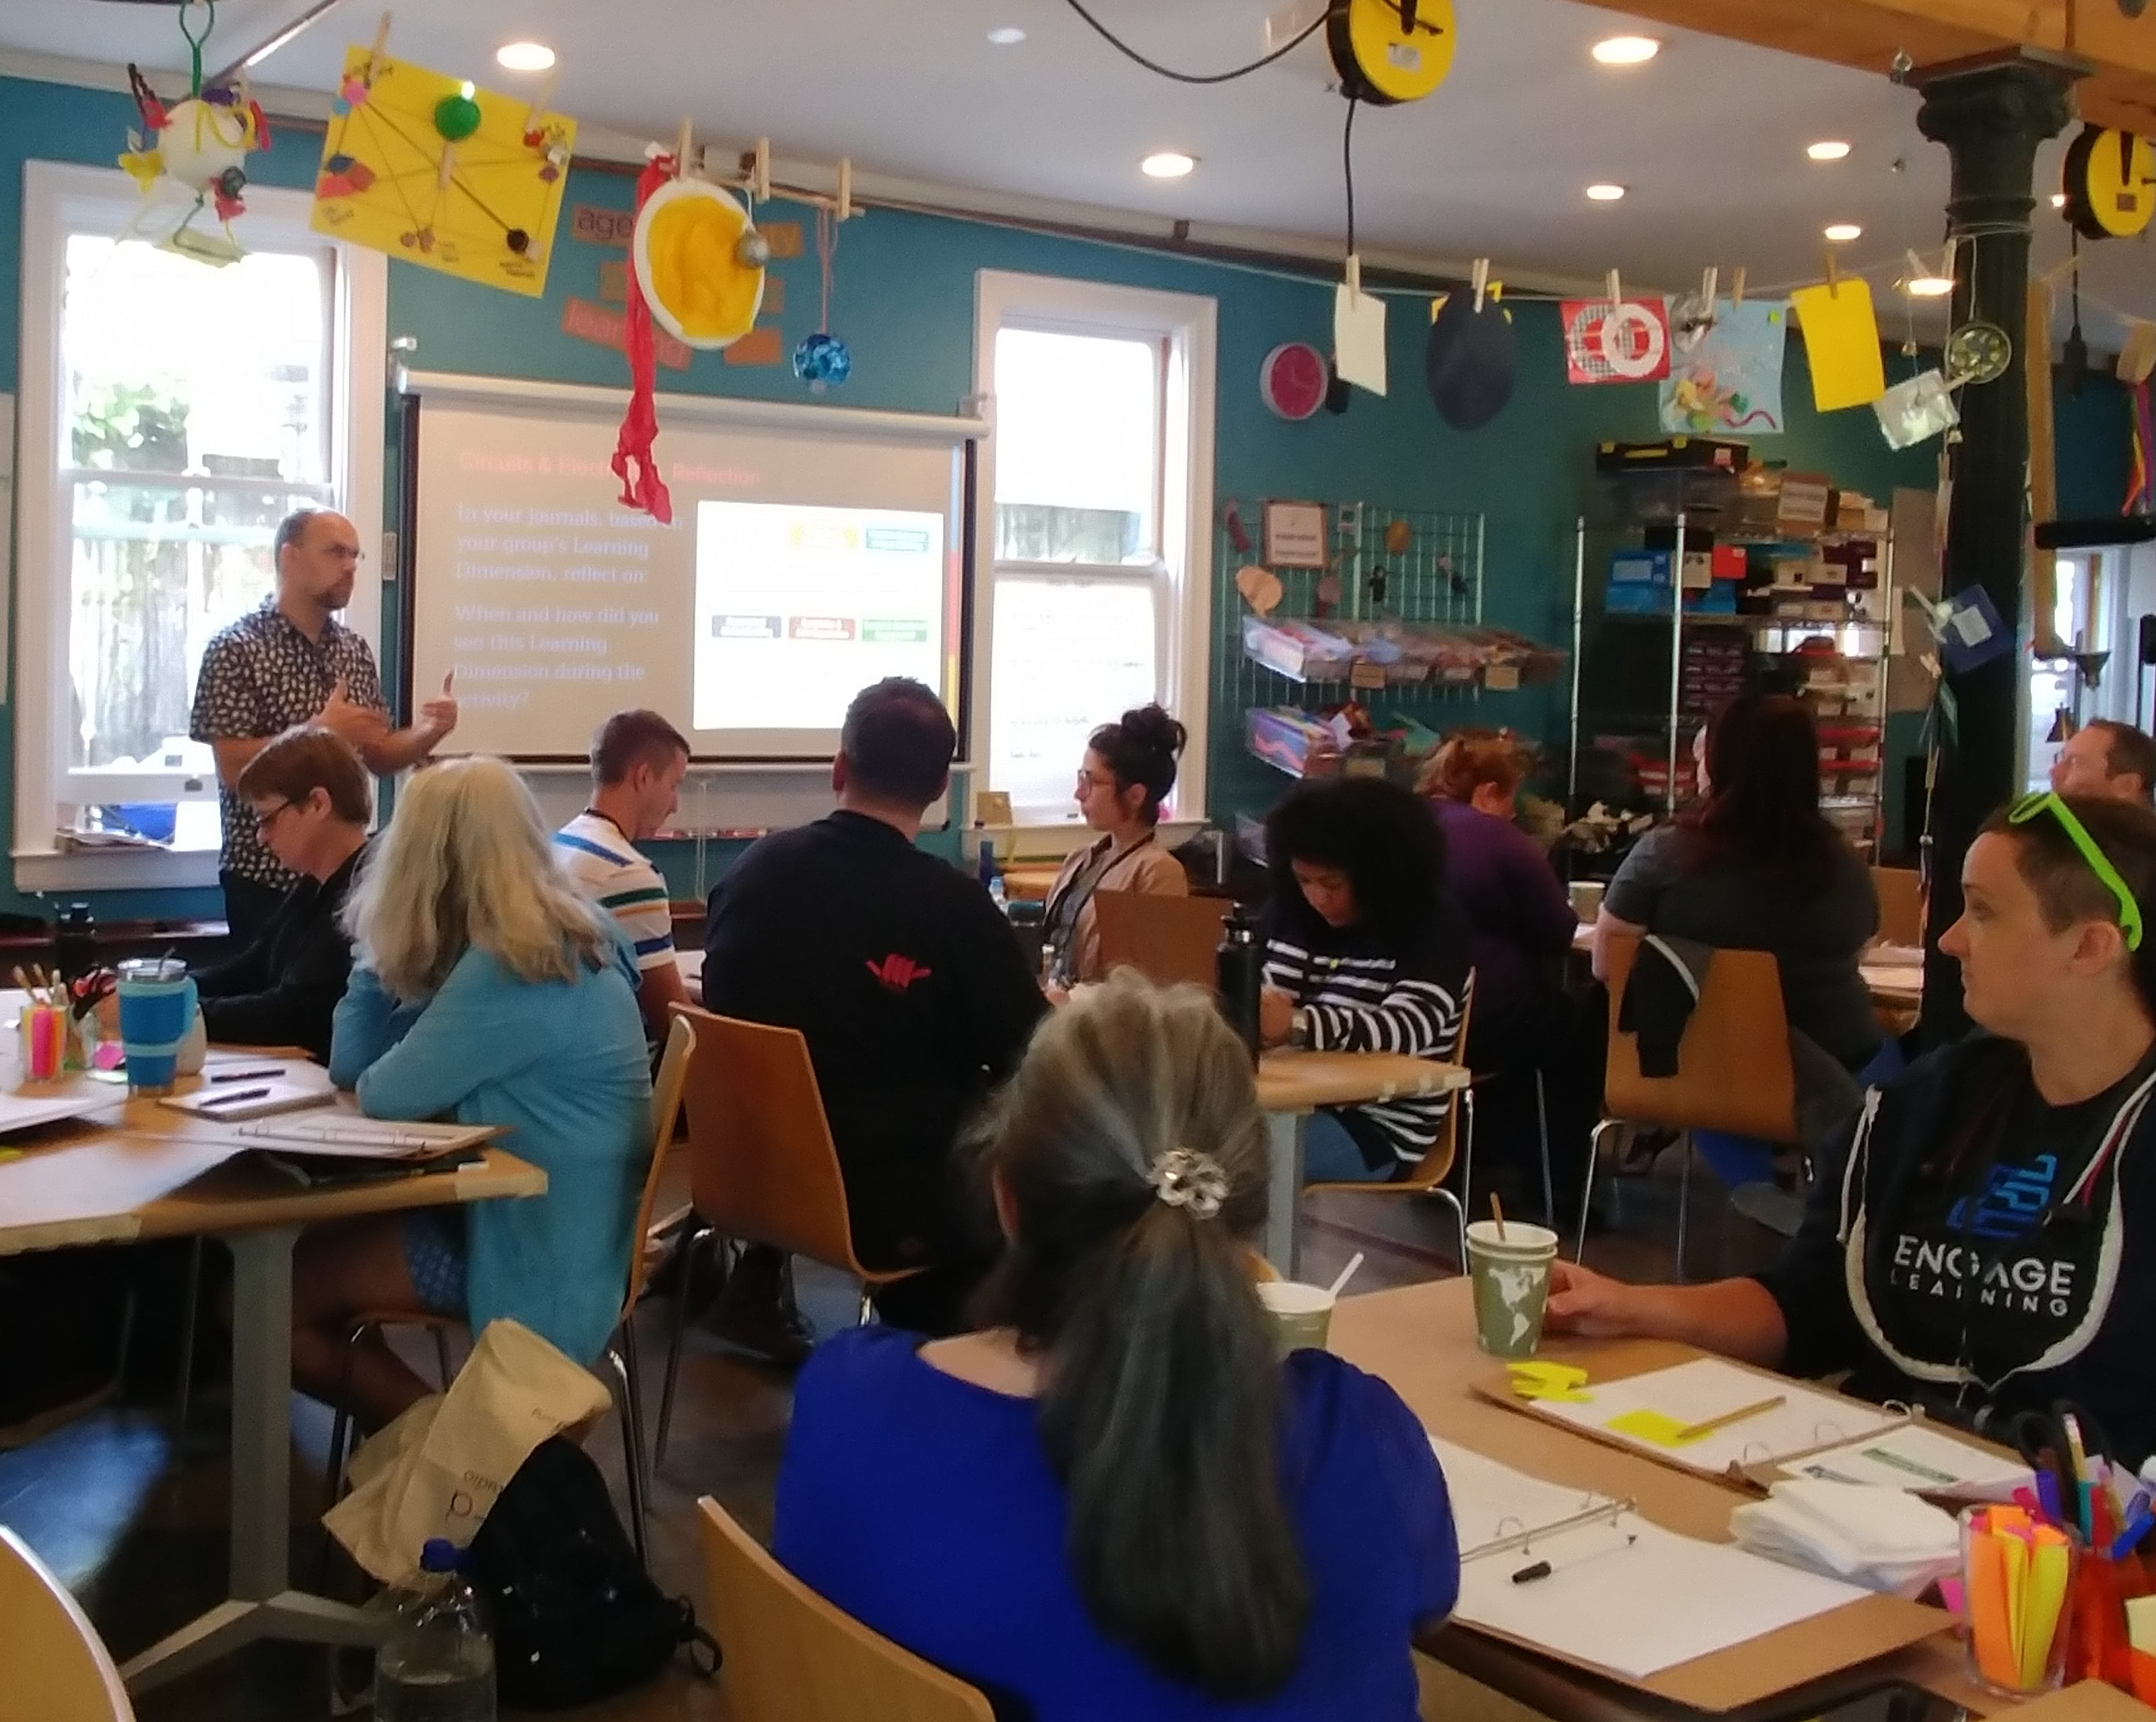 A wide group shot of 10 educators in the Maker Ed Community Studio makerspace